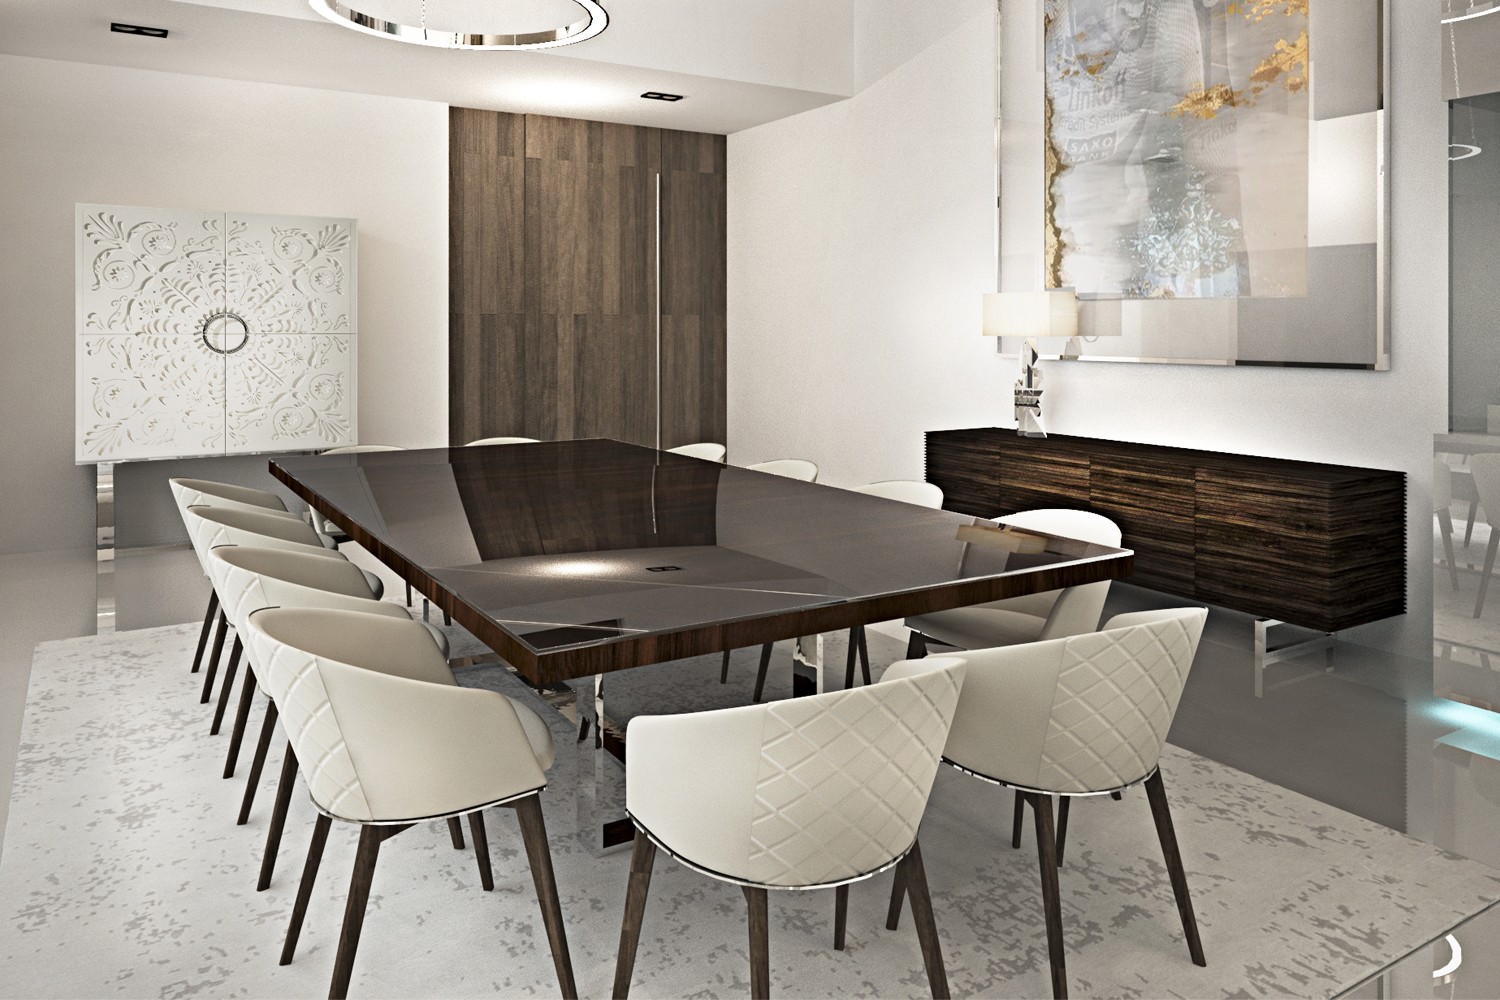 contemporary dining room sets, luxury dining room sets, modern dining room table, contemporary dining room chairs